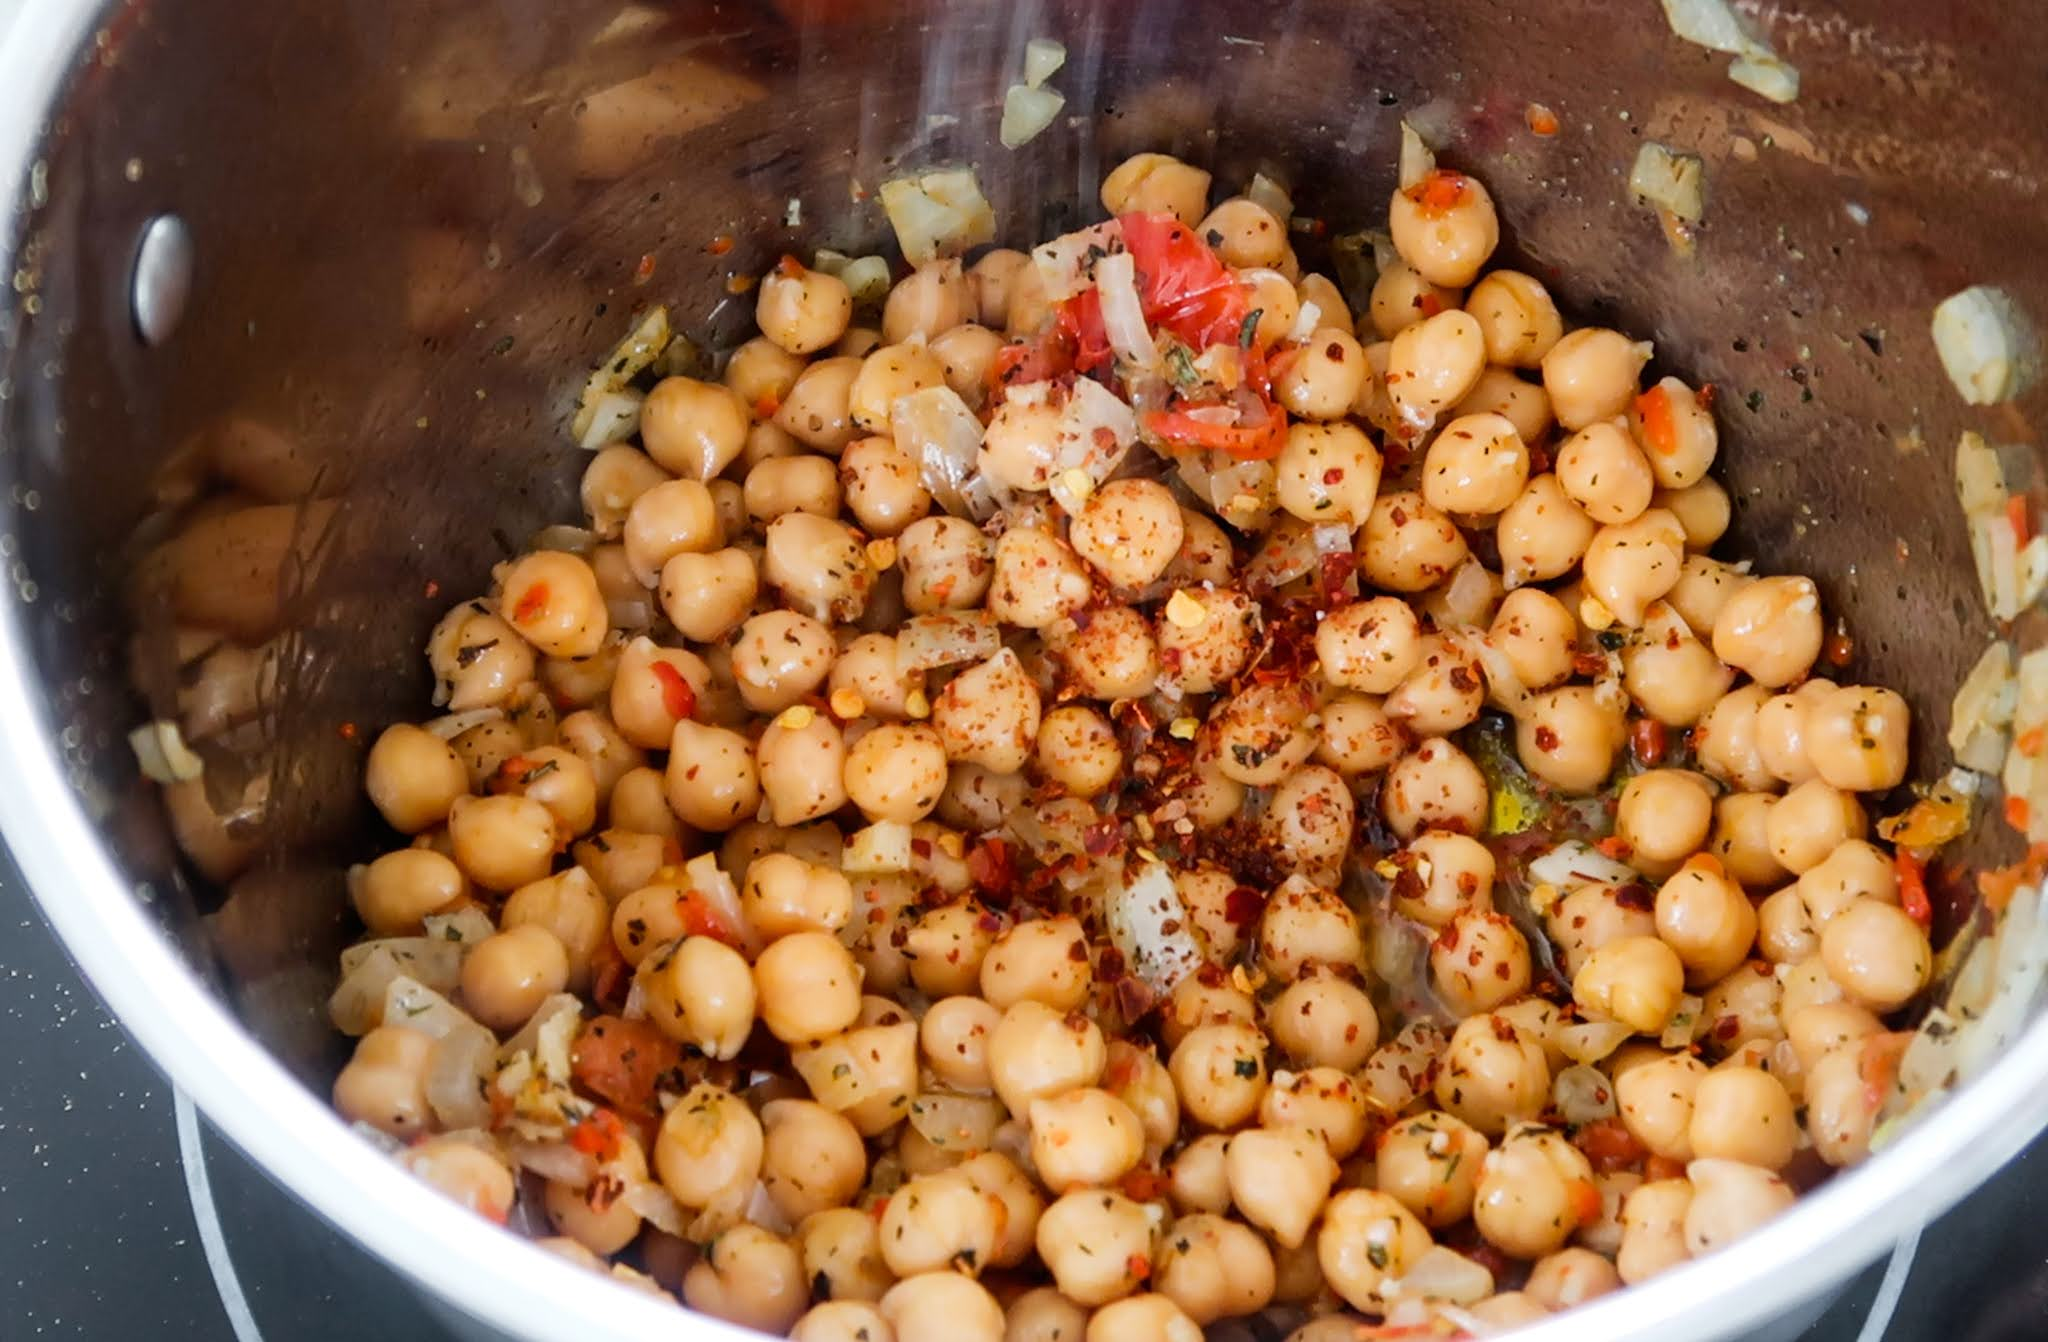 Step 3: Add chickpeas